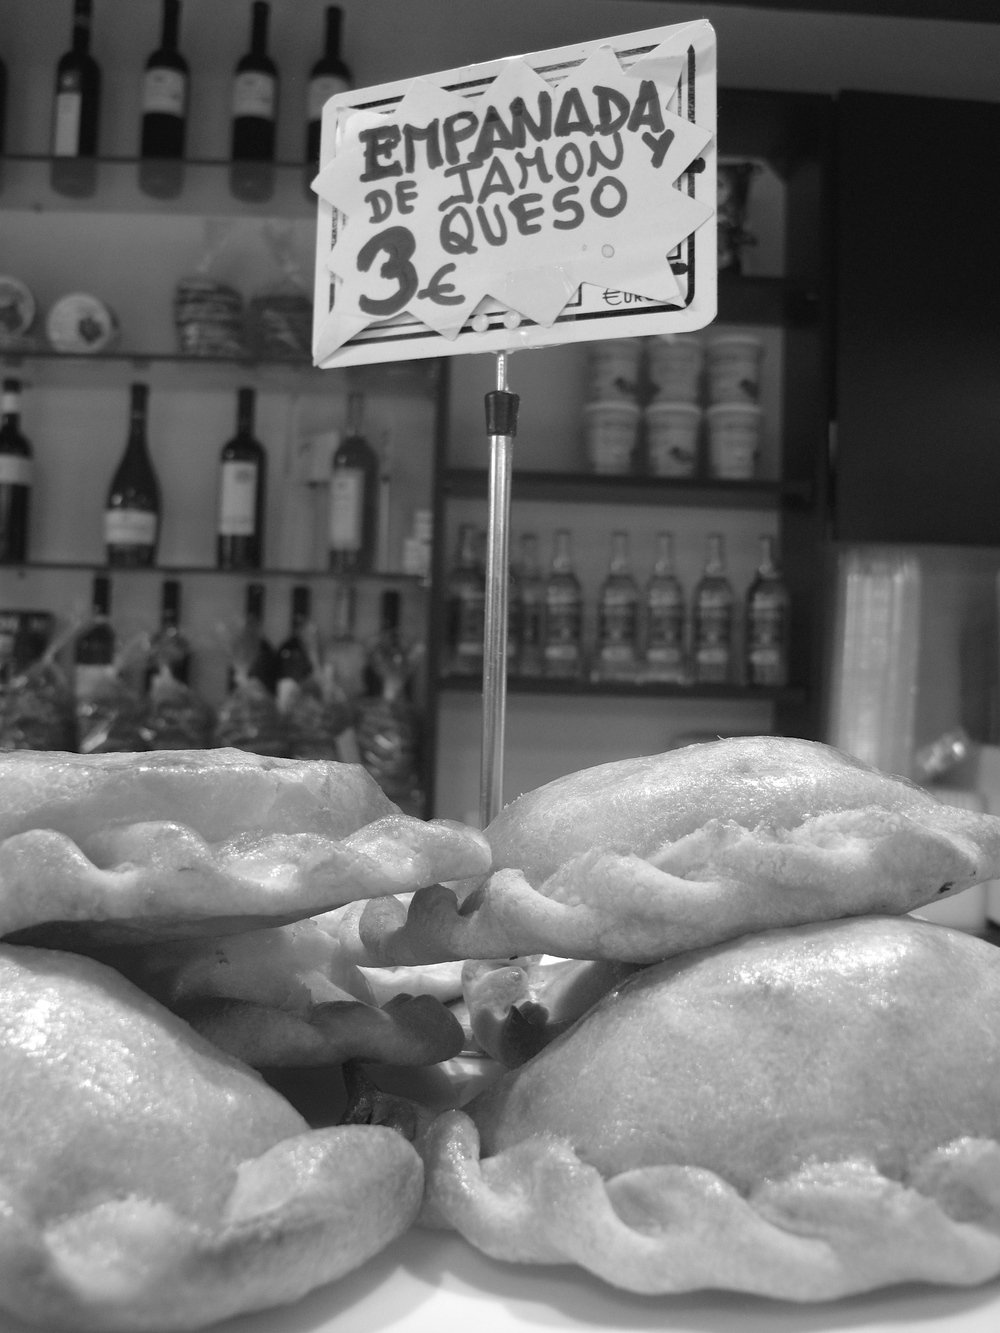 Empanada de jamon y queso at the Boqueria in Barcelona